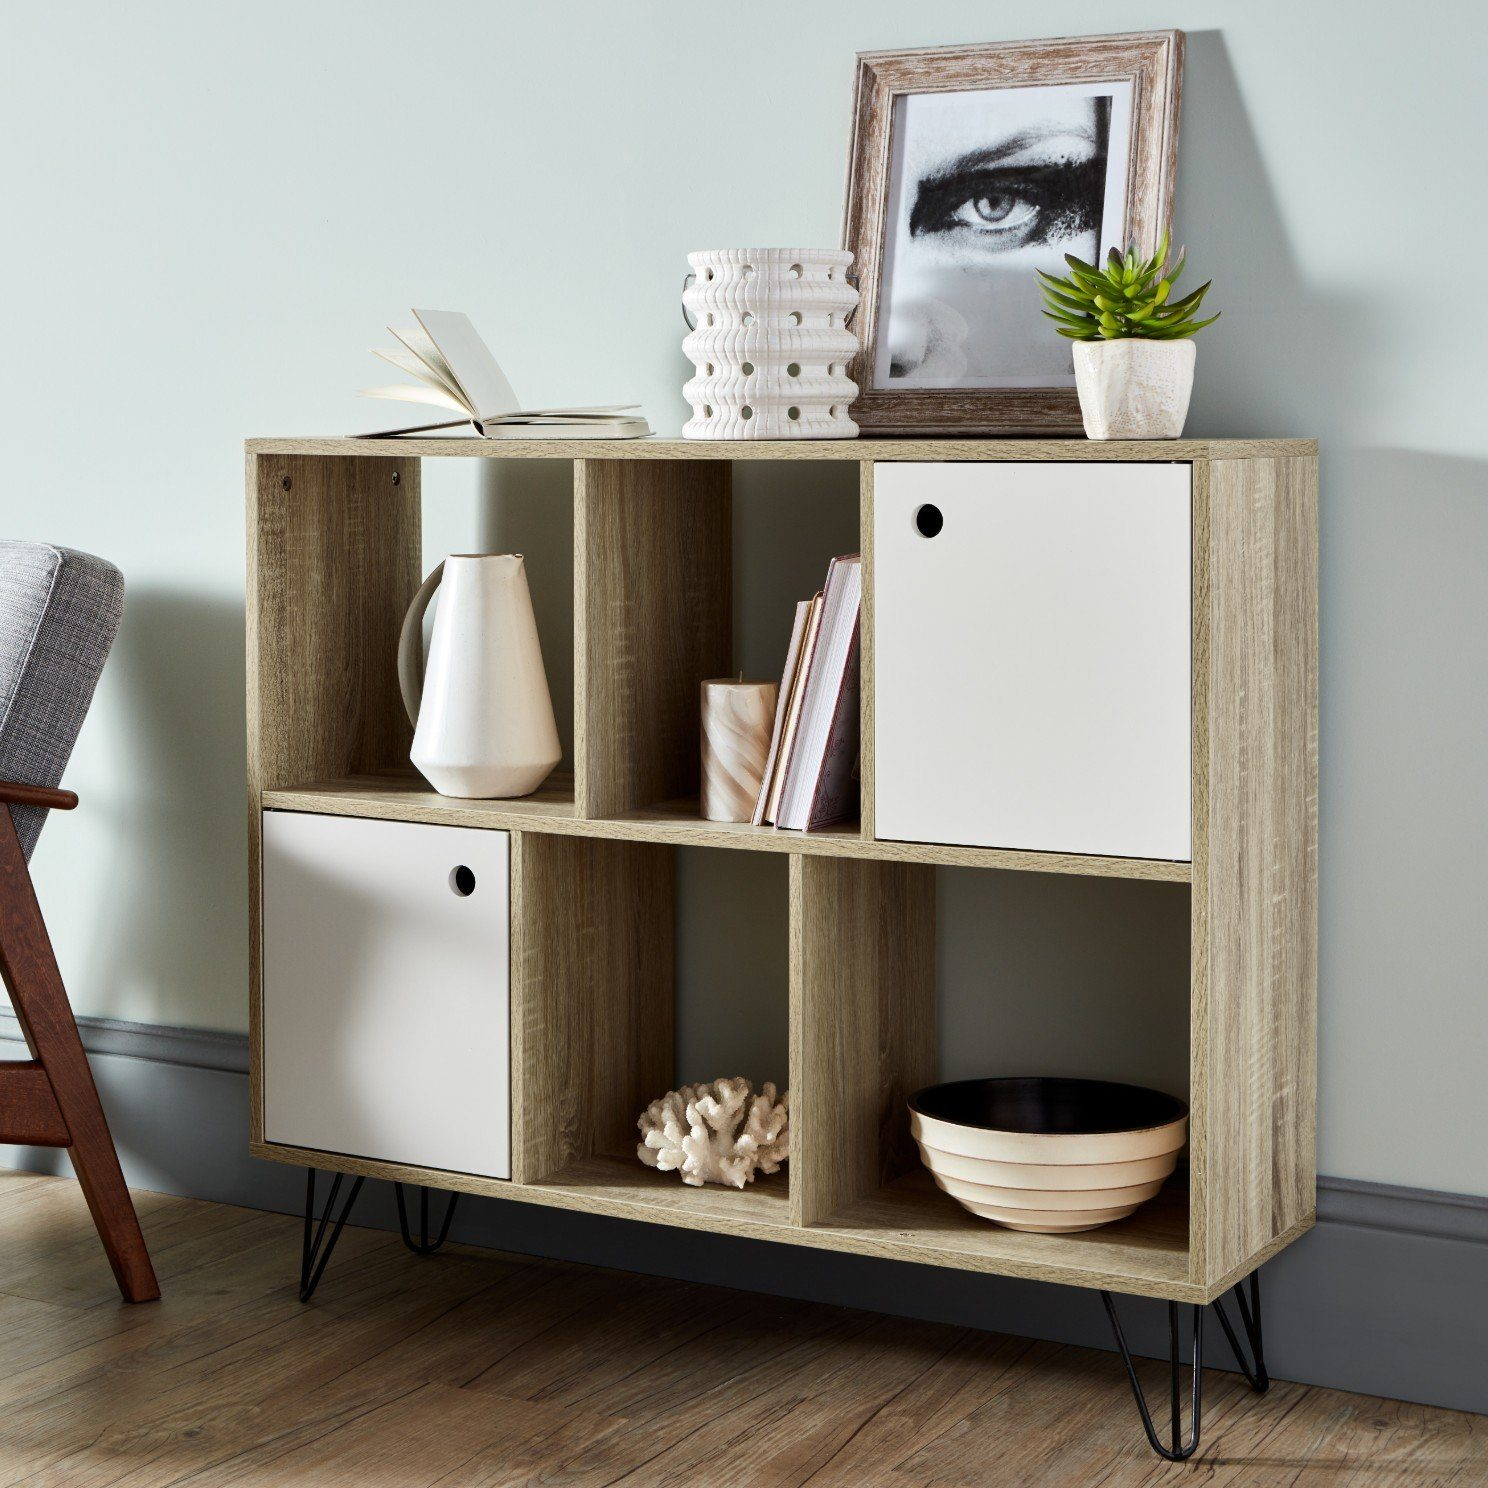 Anderson Oak Effect Mid Century Modern Scandi Style Shelving Unit - Laura James